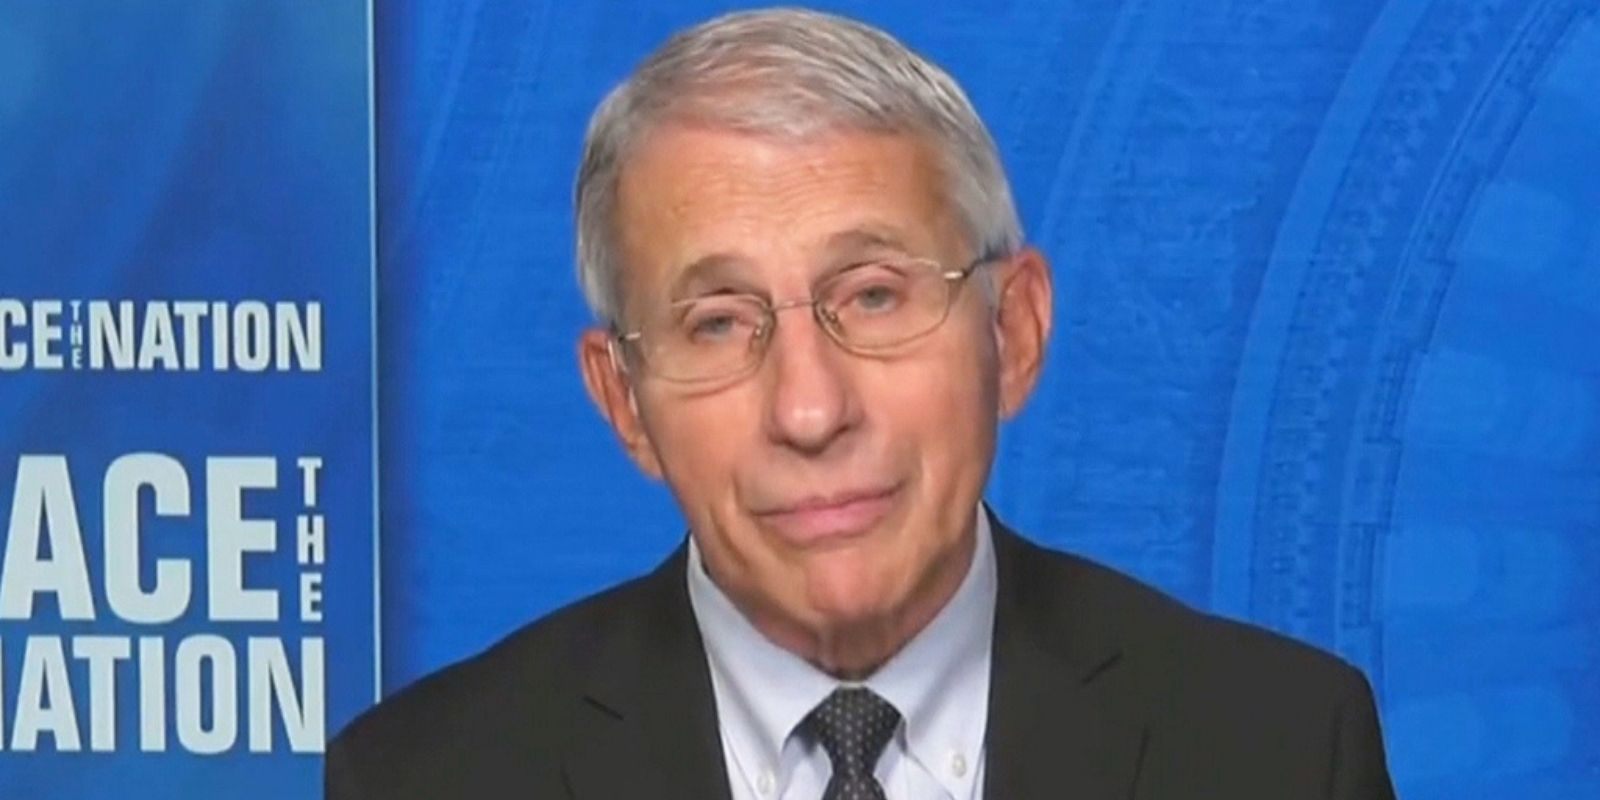 FLIP-FLOP FAUCI: Fauci walks back Christmas comments, tells Americans to have a 'good, normal Christmas'